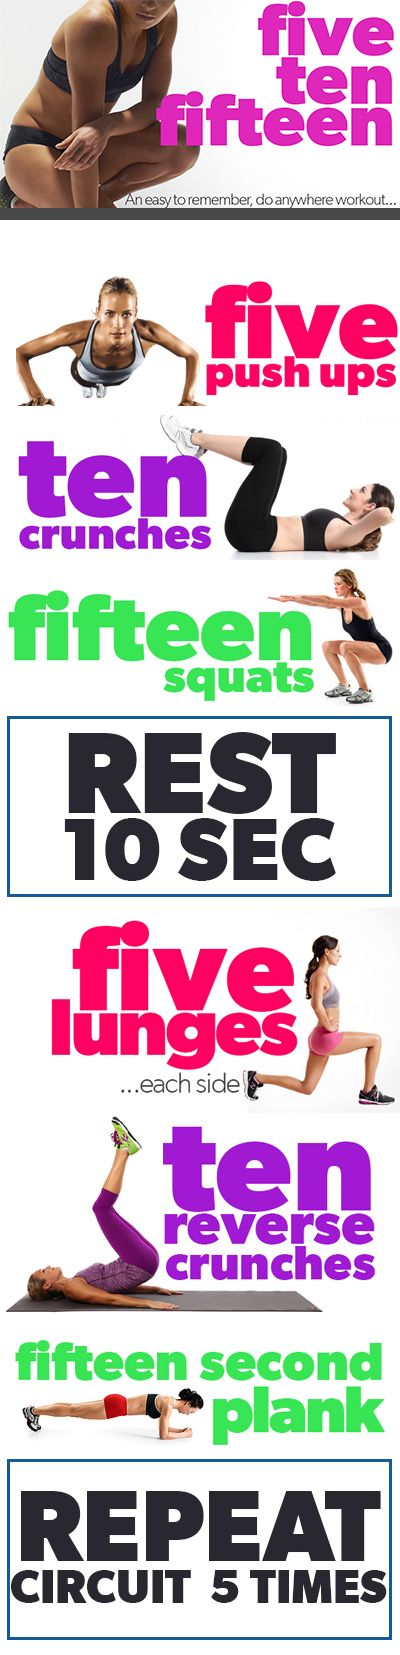 hi top sneakers south africa The FIVE TEN FIFTEEN Circuit Workout     fitness  health  slim  diet  weight  tips  workout  exercise  fit  motivation  arm